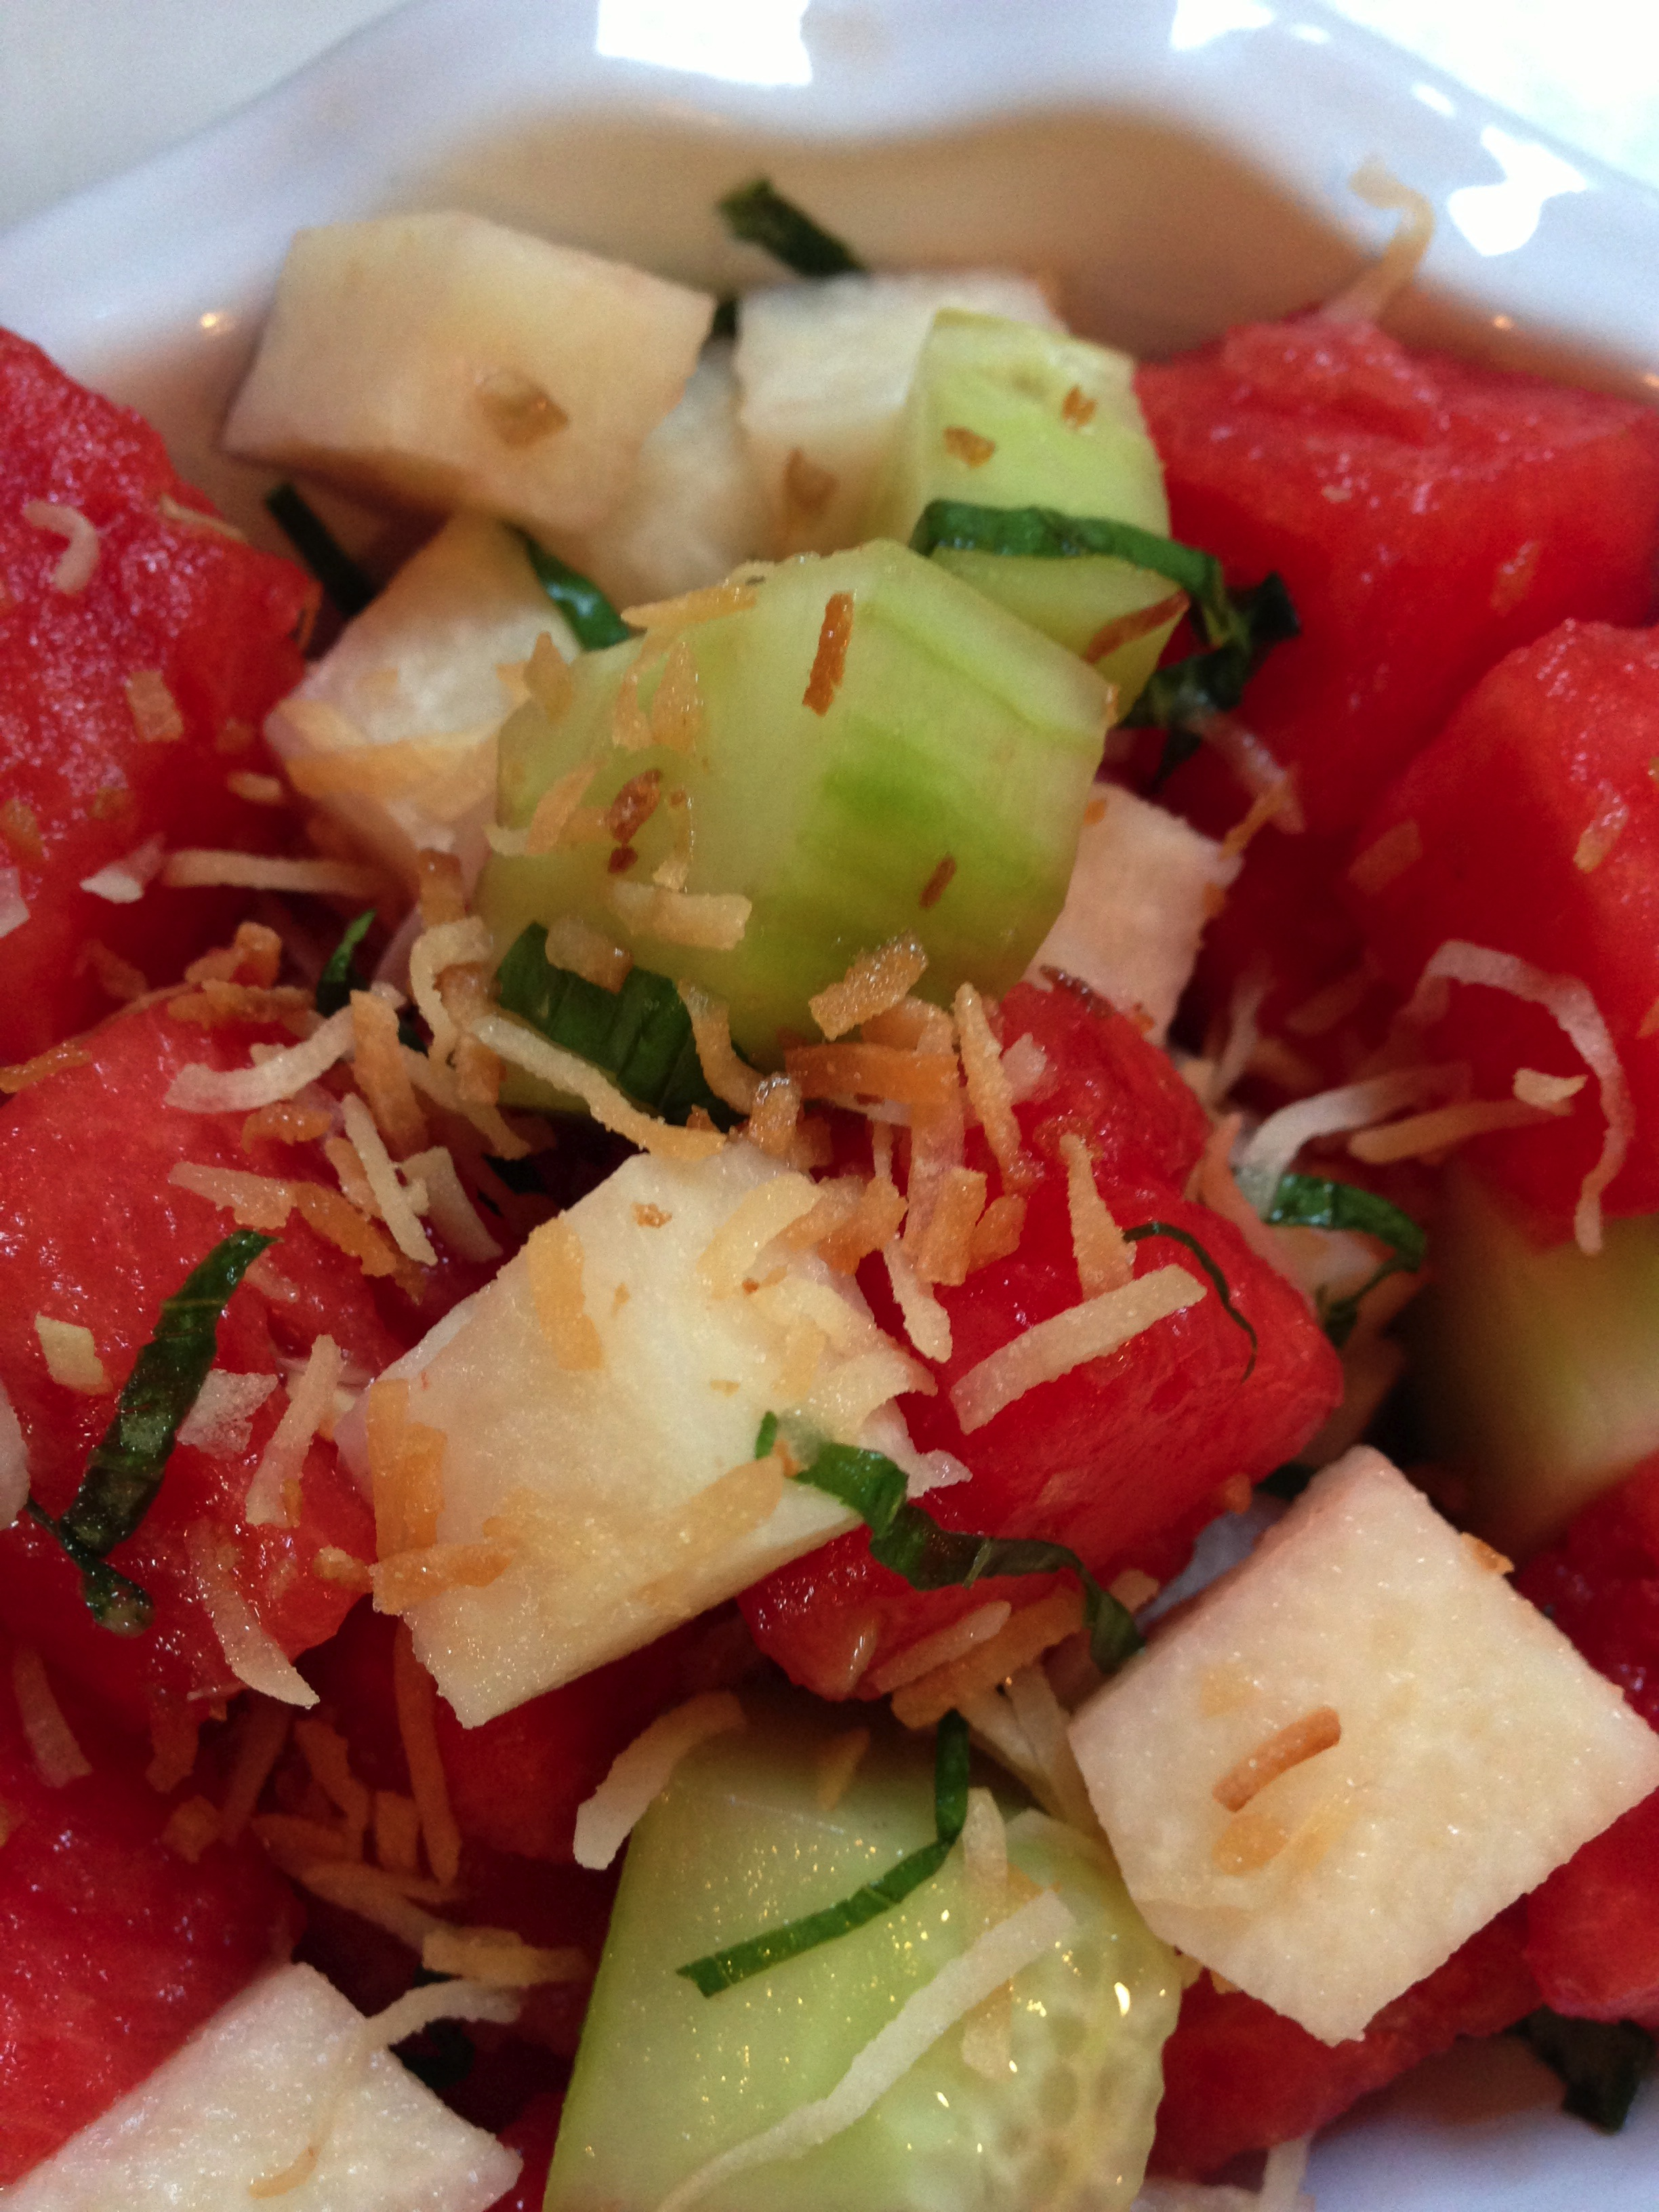 Sue's Watermelon Salad